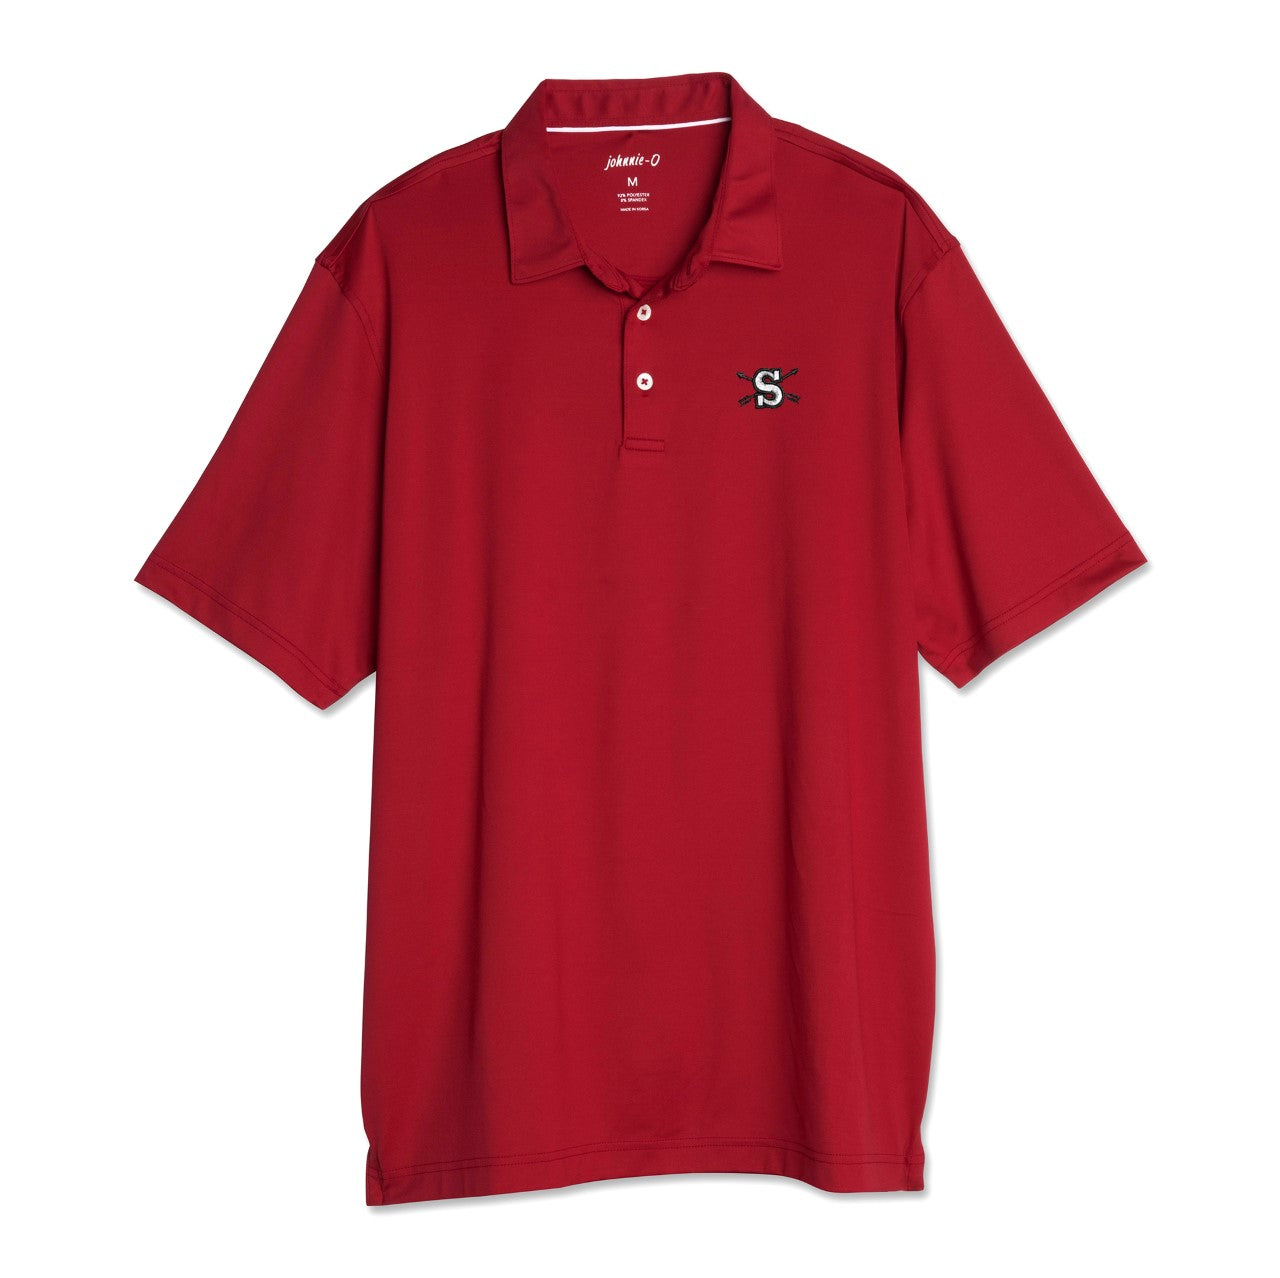 Golf Shirt -Johnnie'O- Birdie - Crimson